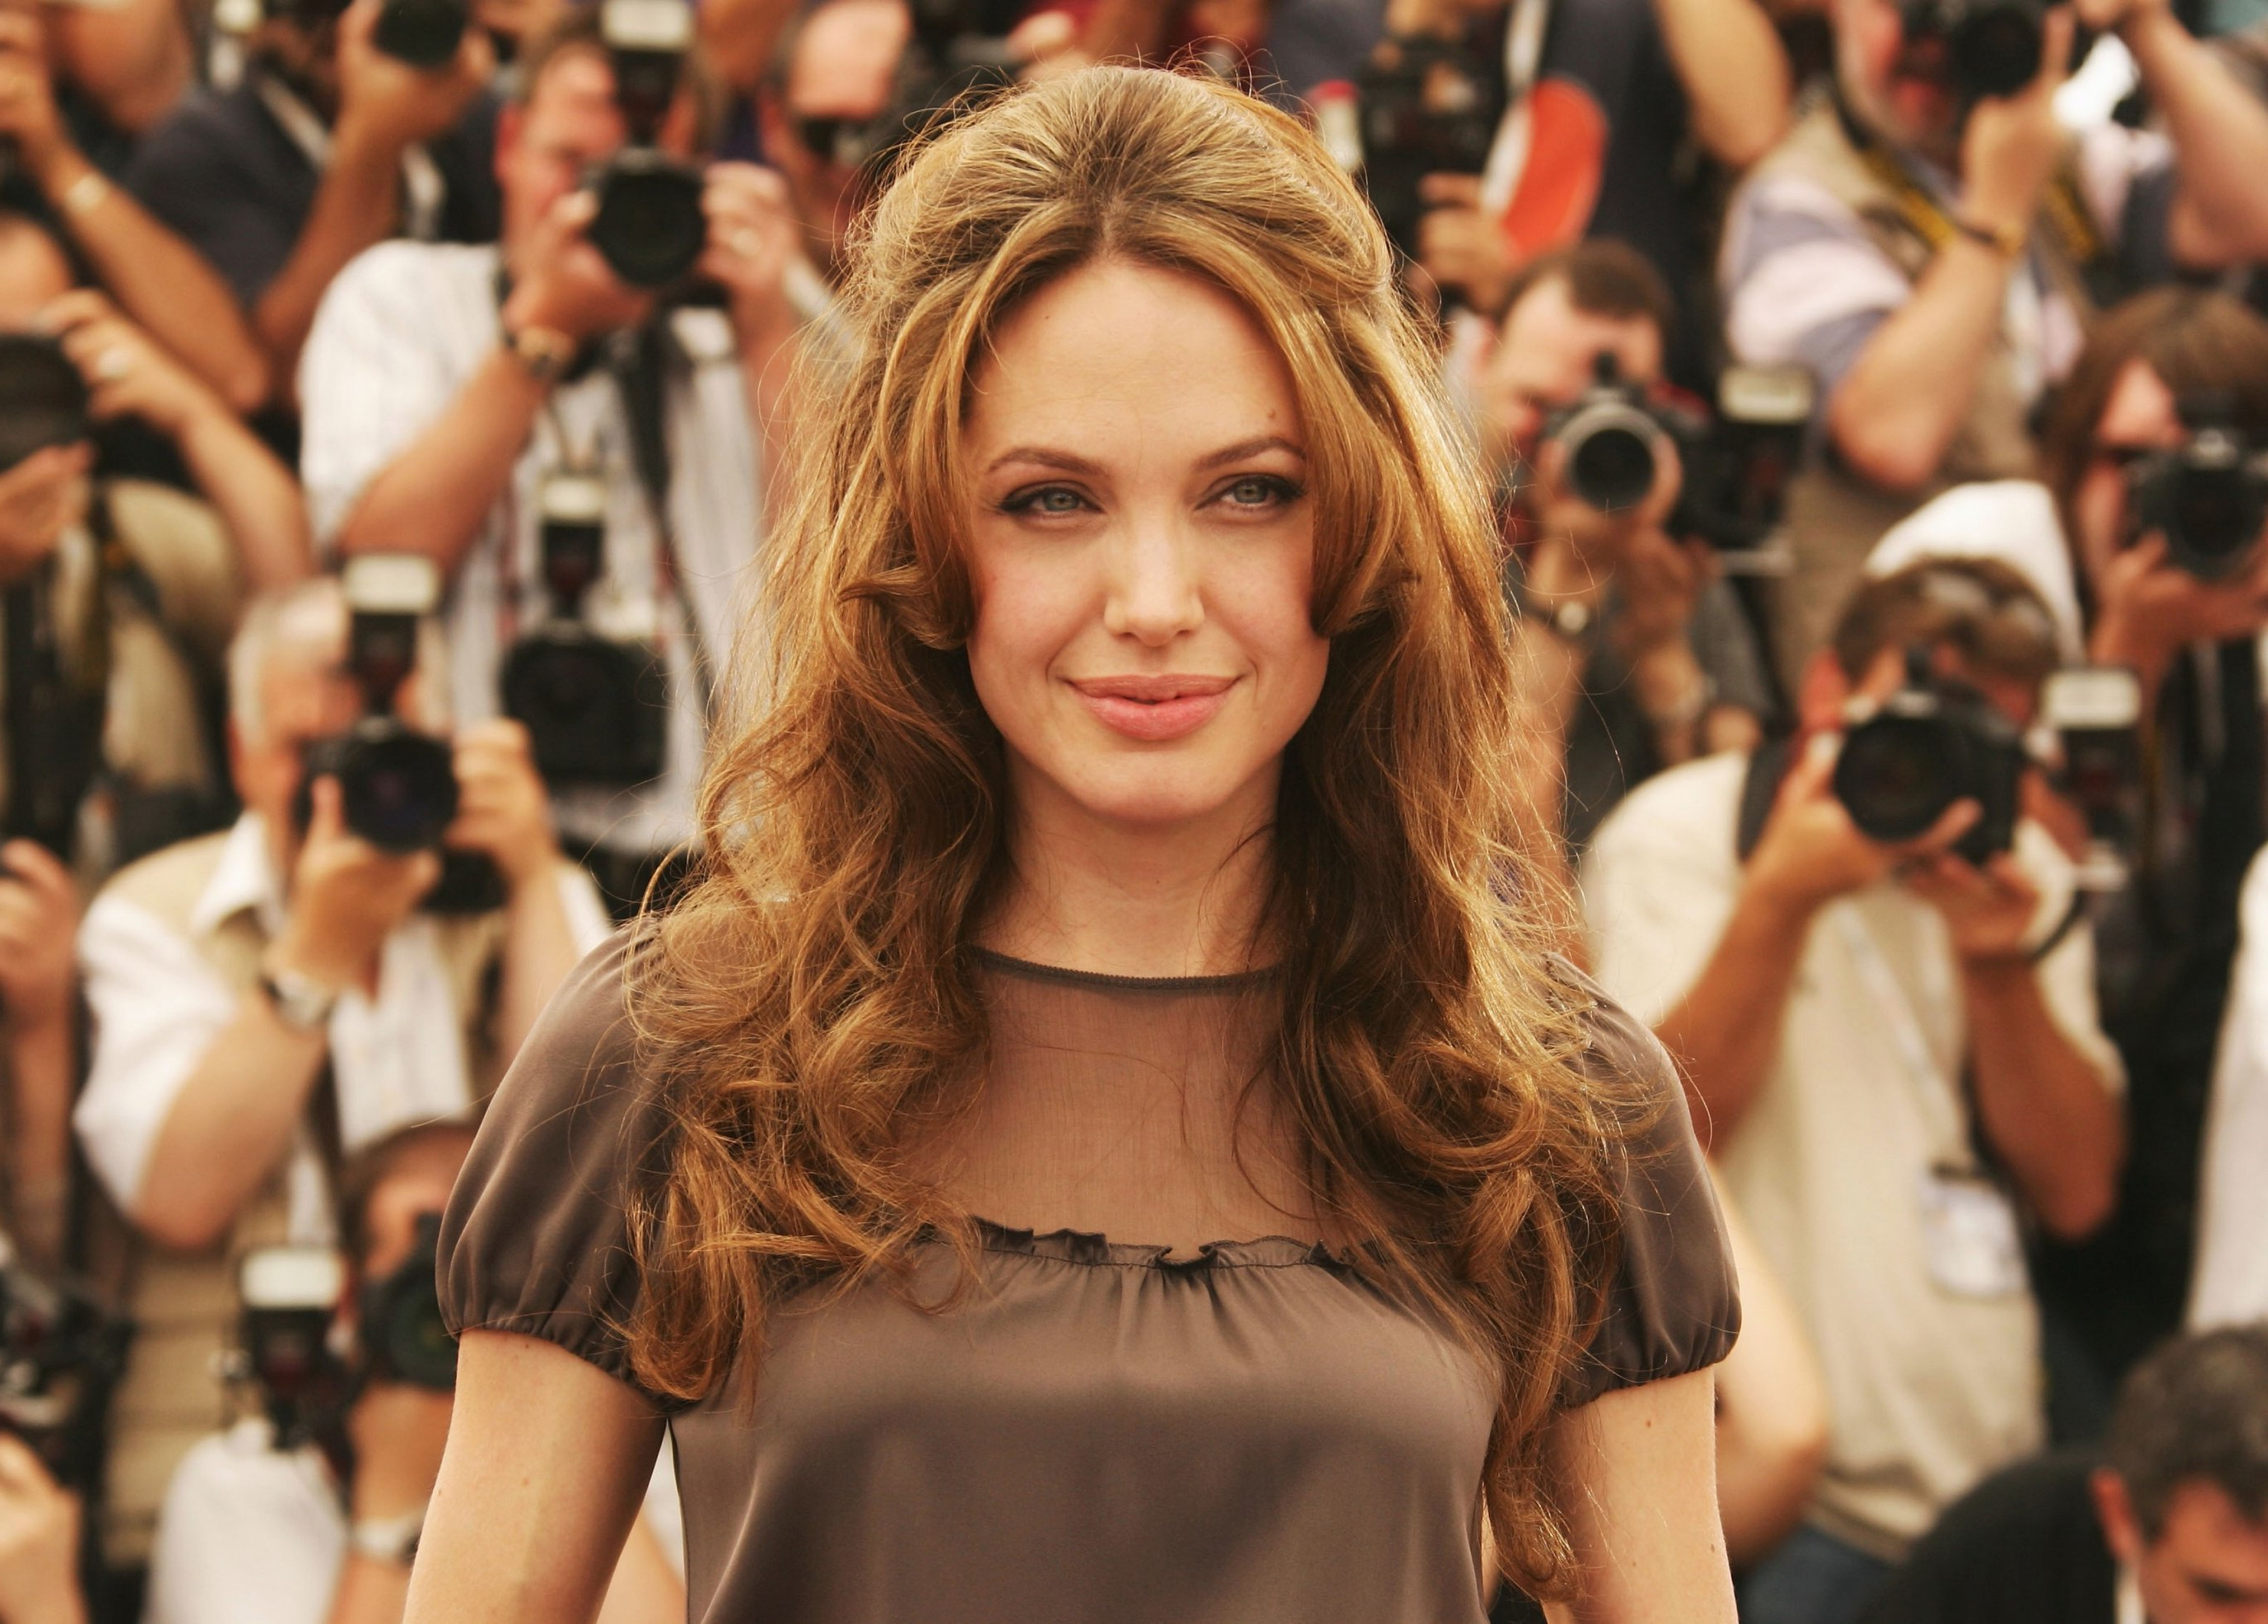 Medium Hair Styles Ideas Intended For Popular Angelina Jolie Medium Hairstyles (View 4 of 20)